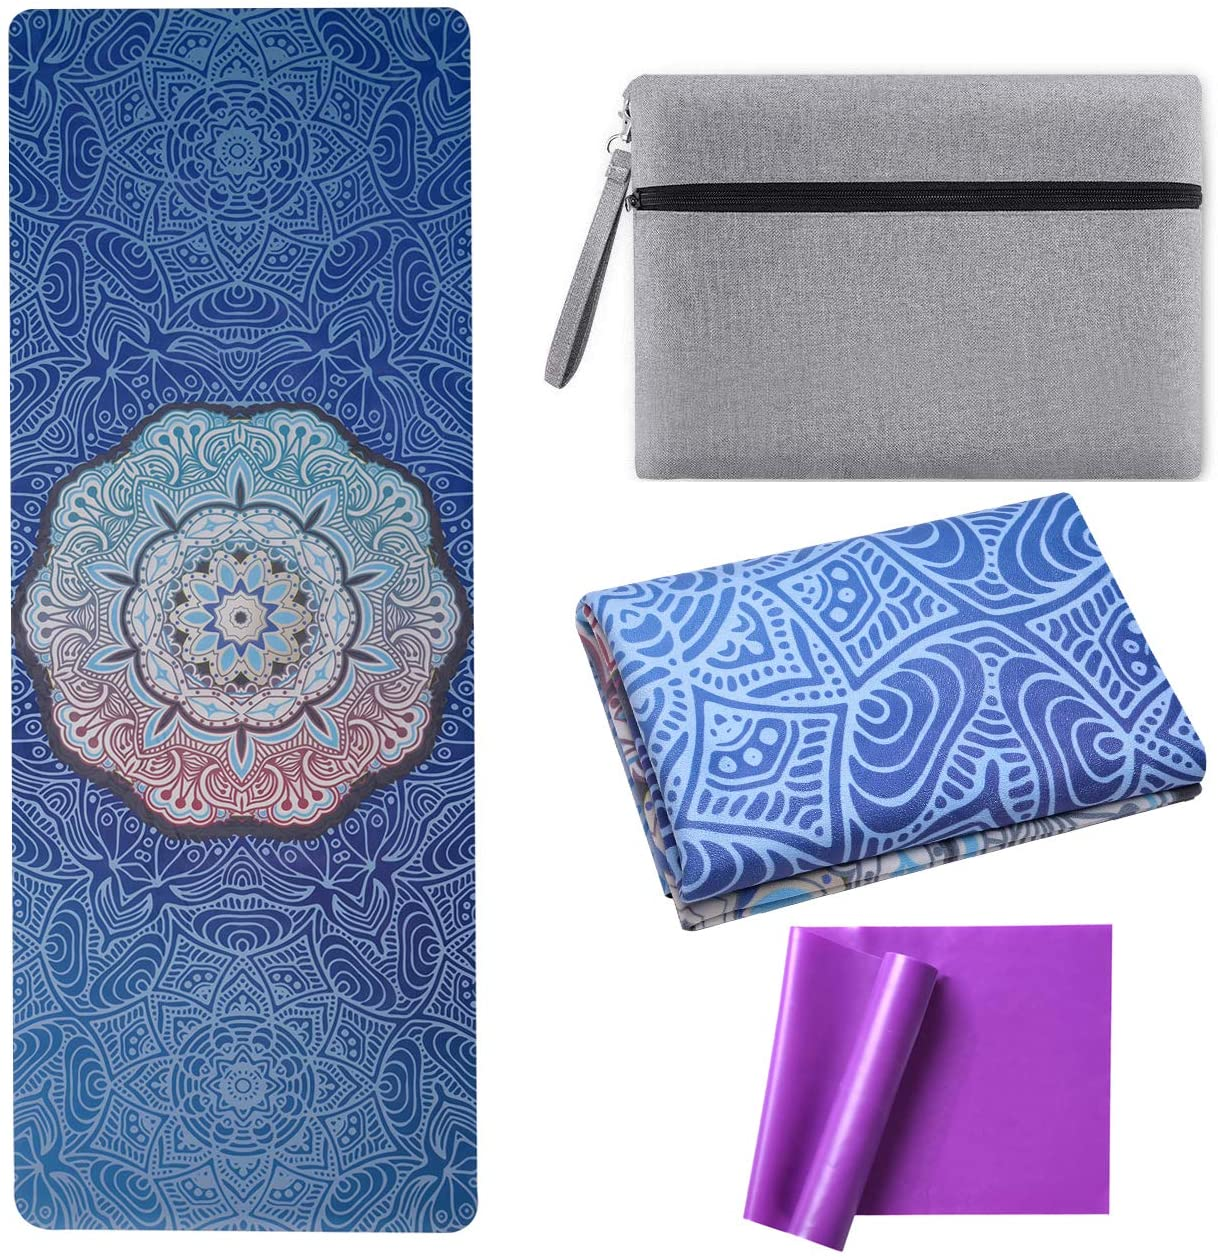 OPLIY Yoga Mat with Yoga Strap,Foldable Yoga Mat 1/16 Inch Thick Non-Slip Yoga Exercise Mat Sweat Absorbent High-Grade Natural Suede for Travel,Coming with Carrying Bag